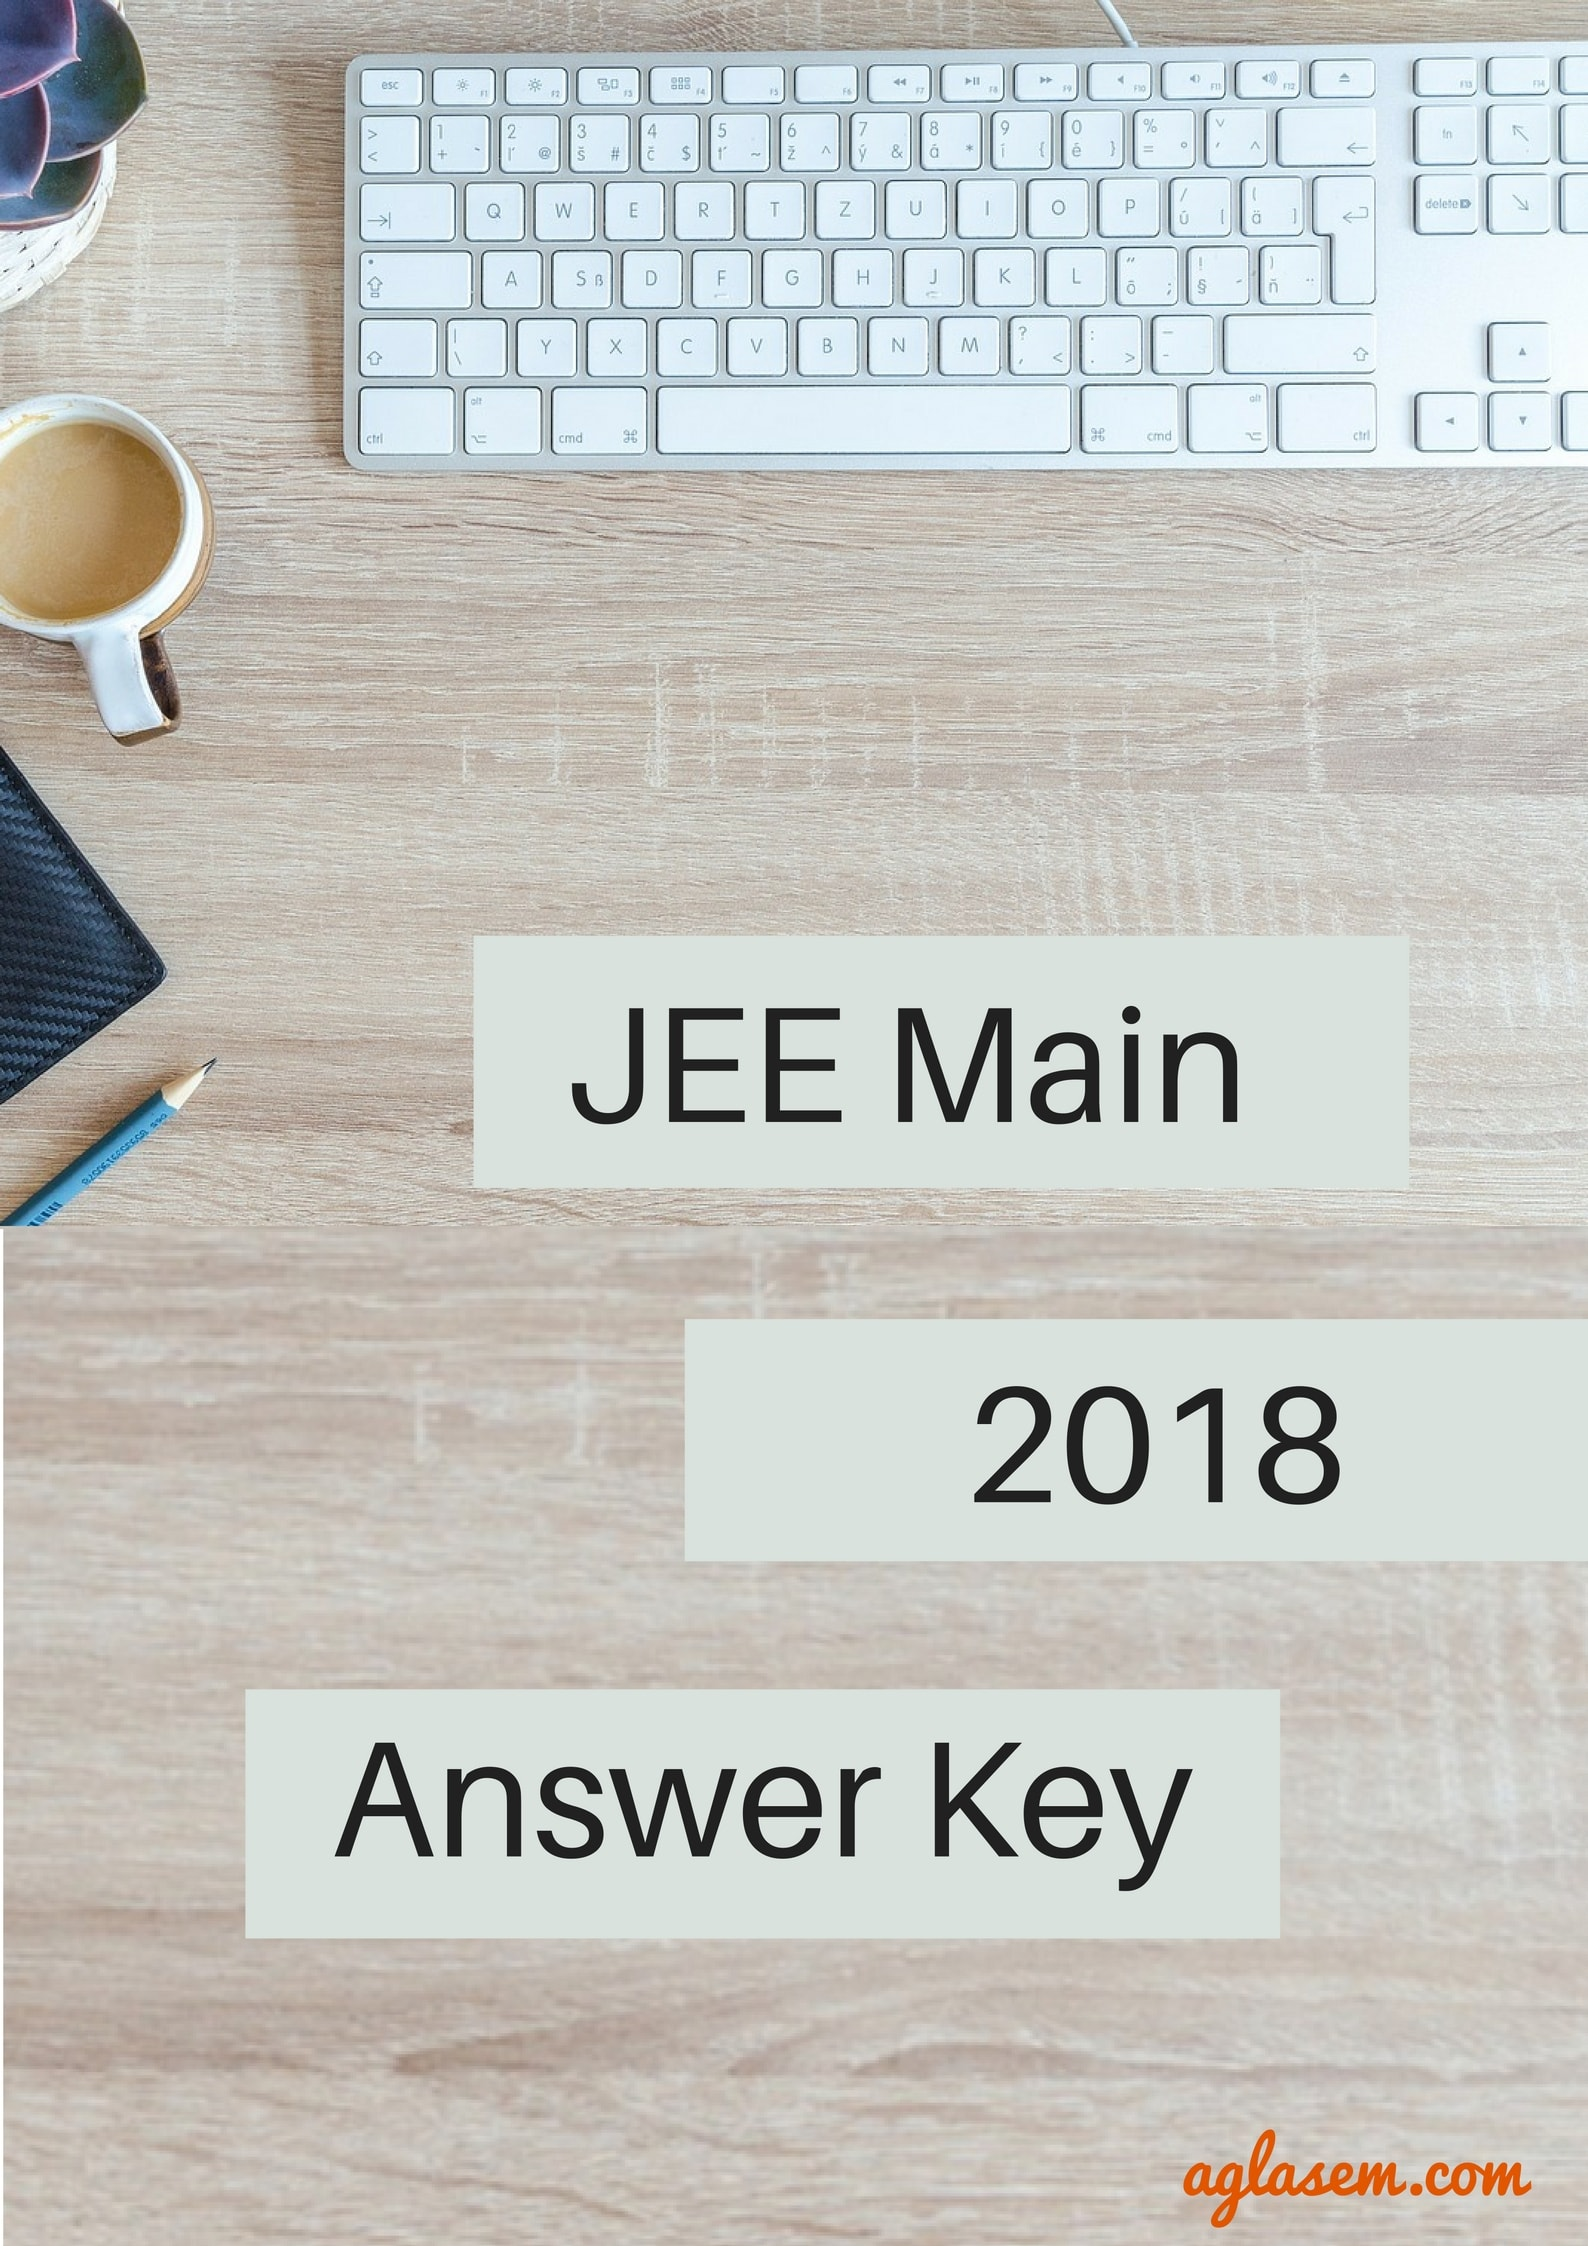 JEE 2018 Key for A, B, C, D with Question Paper Available - Download Here